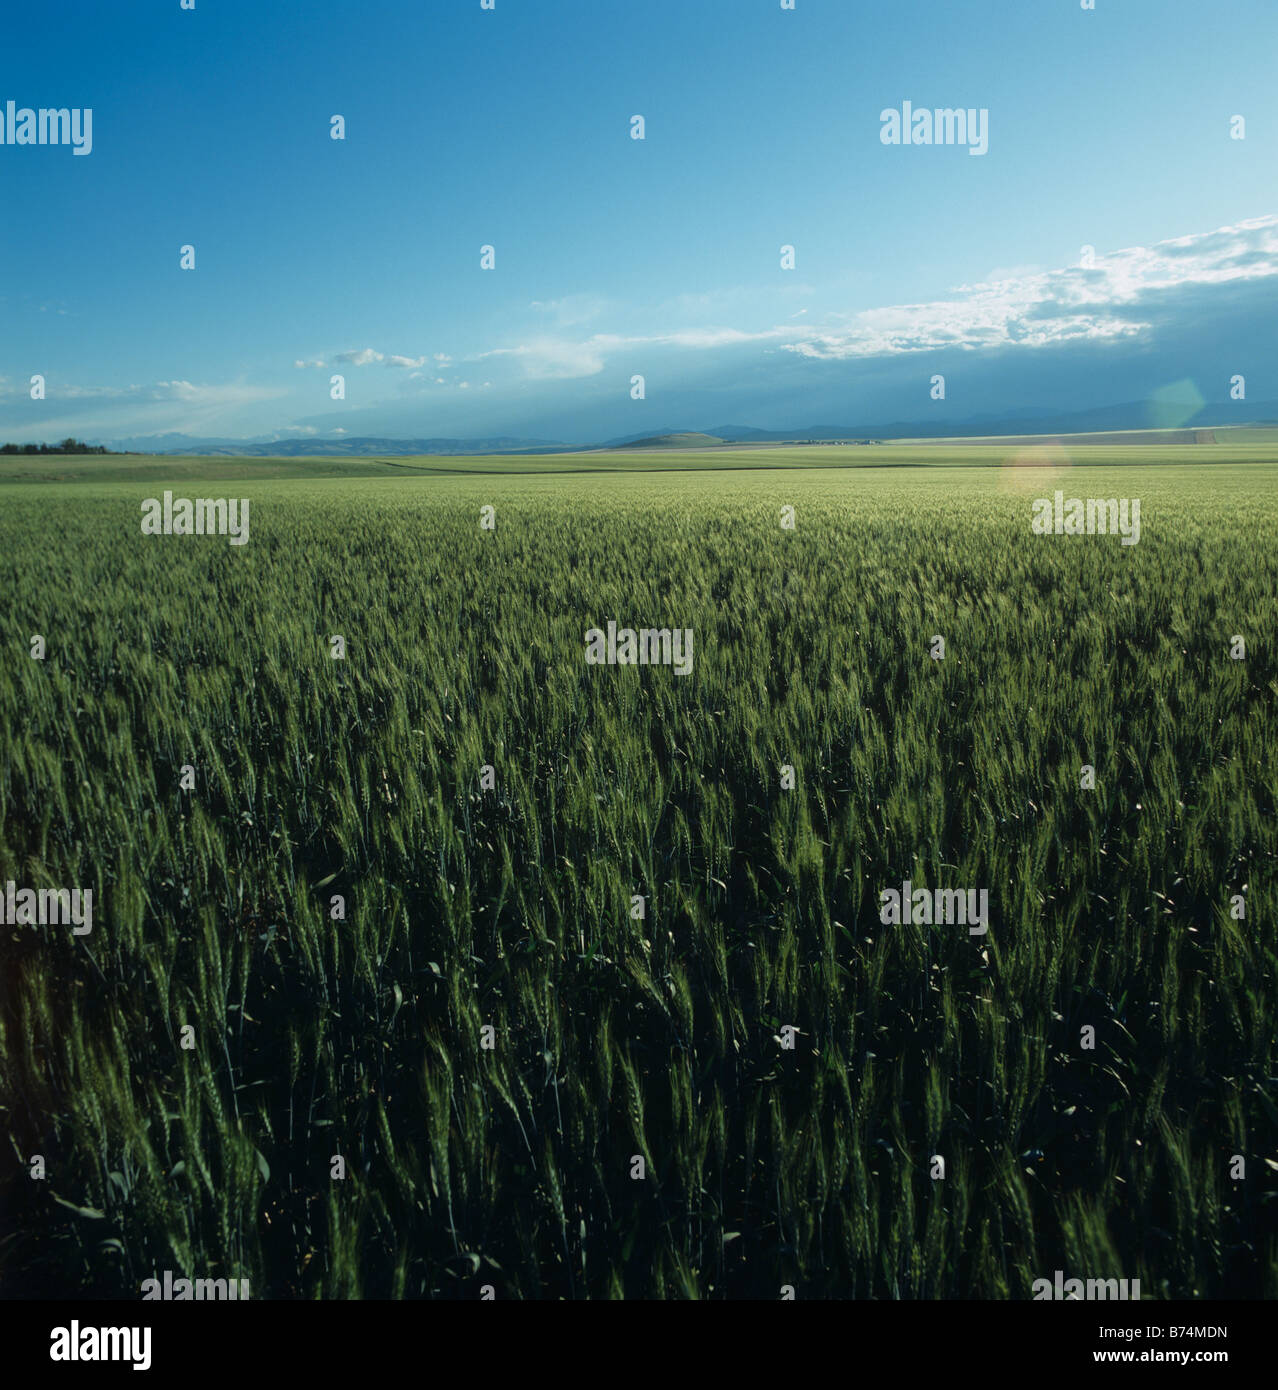 Bearded wheat crop in unripe green ear lit by late afternoon sunshine near Three Forks Montana USA - Stock Image